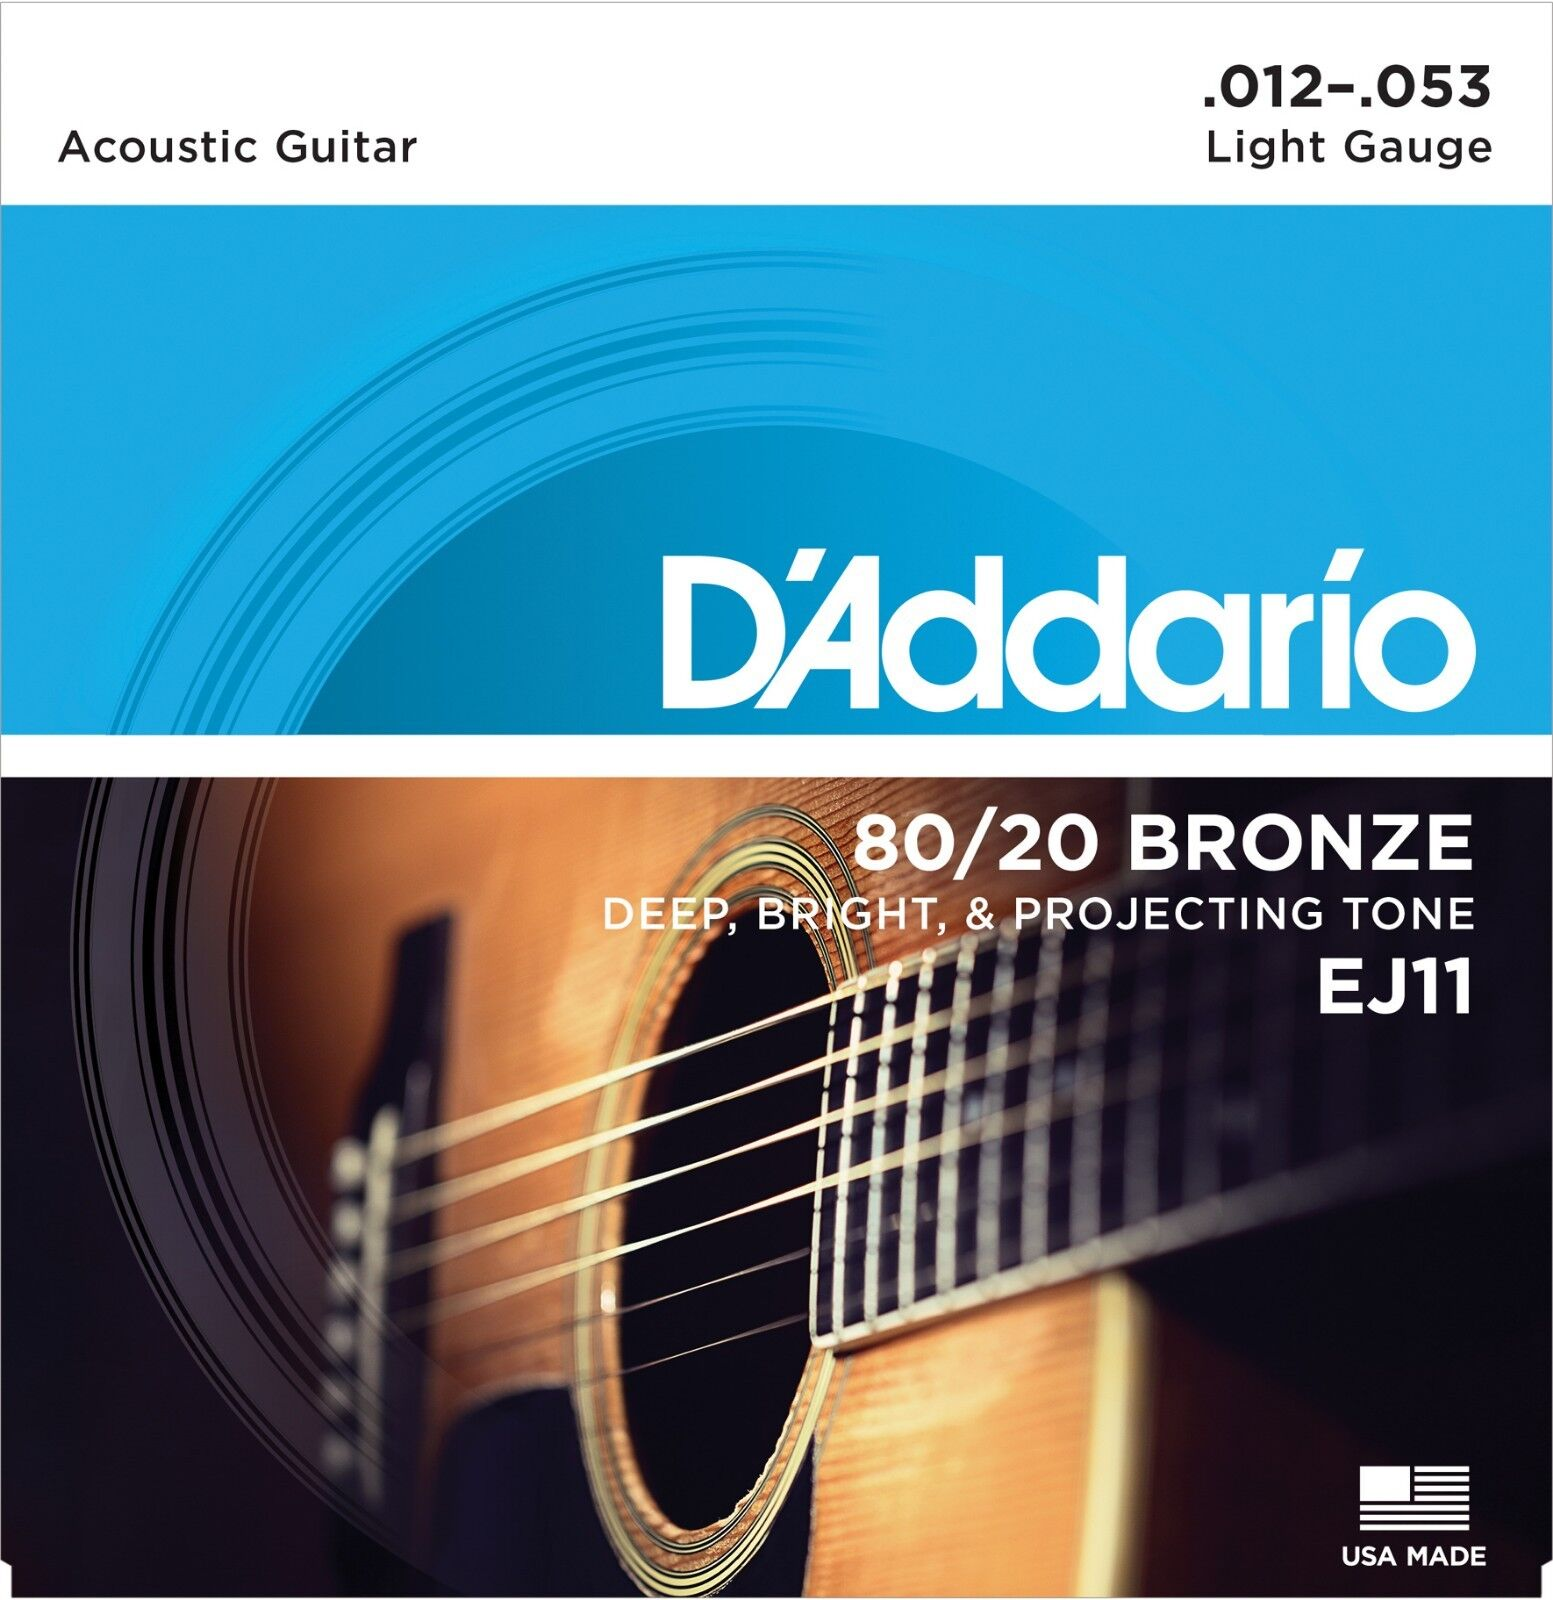 D'Addario EJ11 Light Acoustic Guitar Strings 80/20 Bronze 12-53